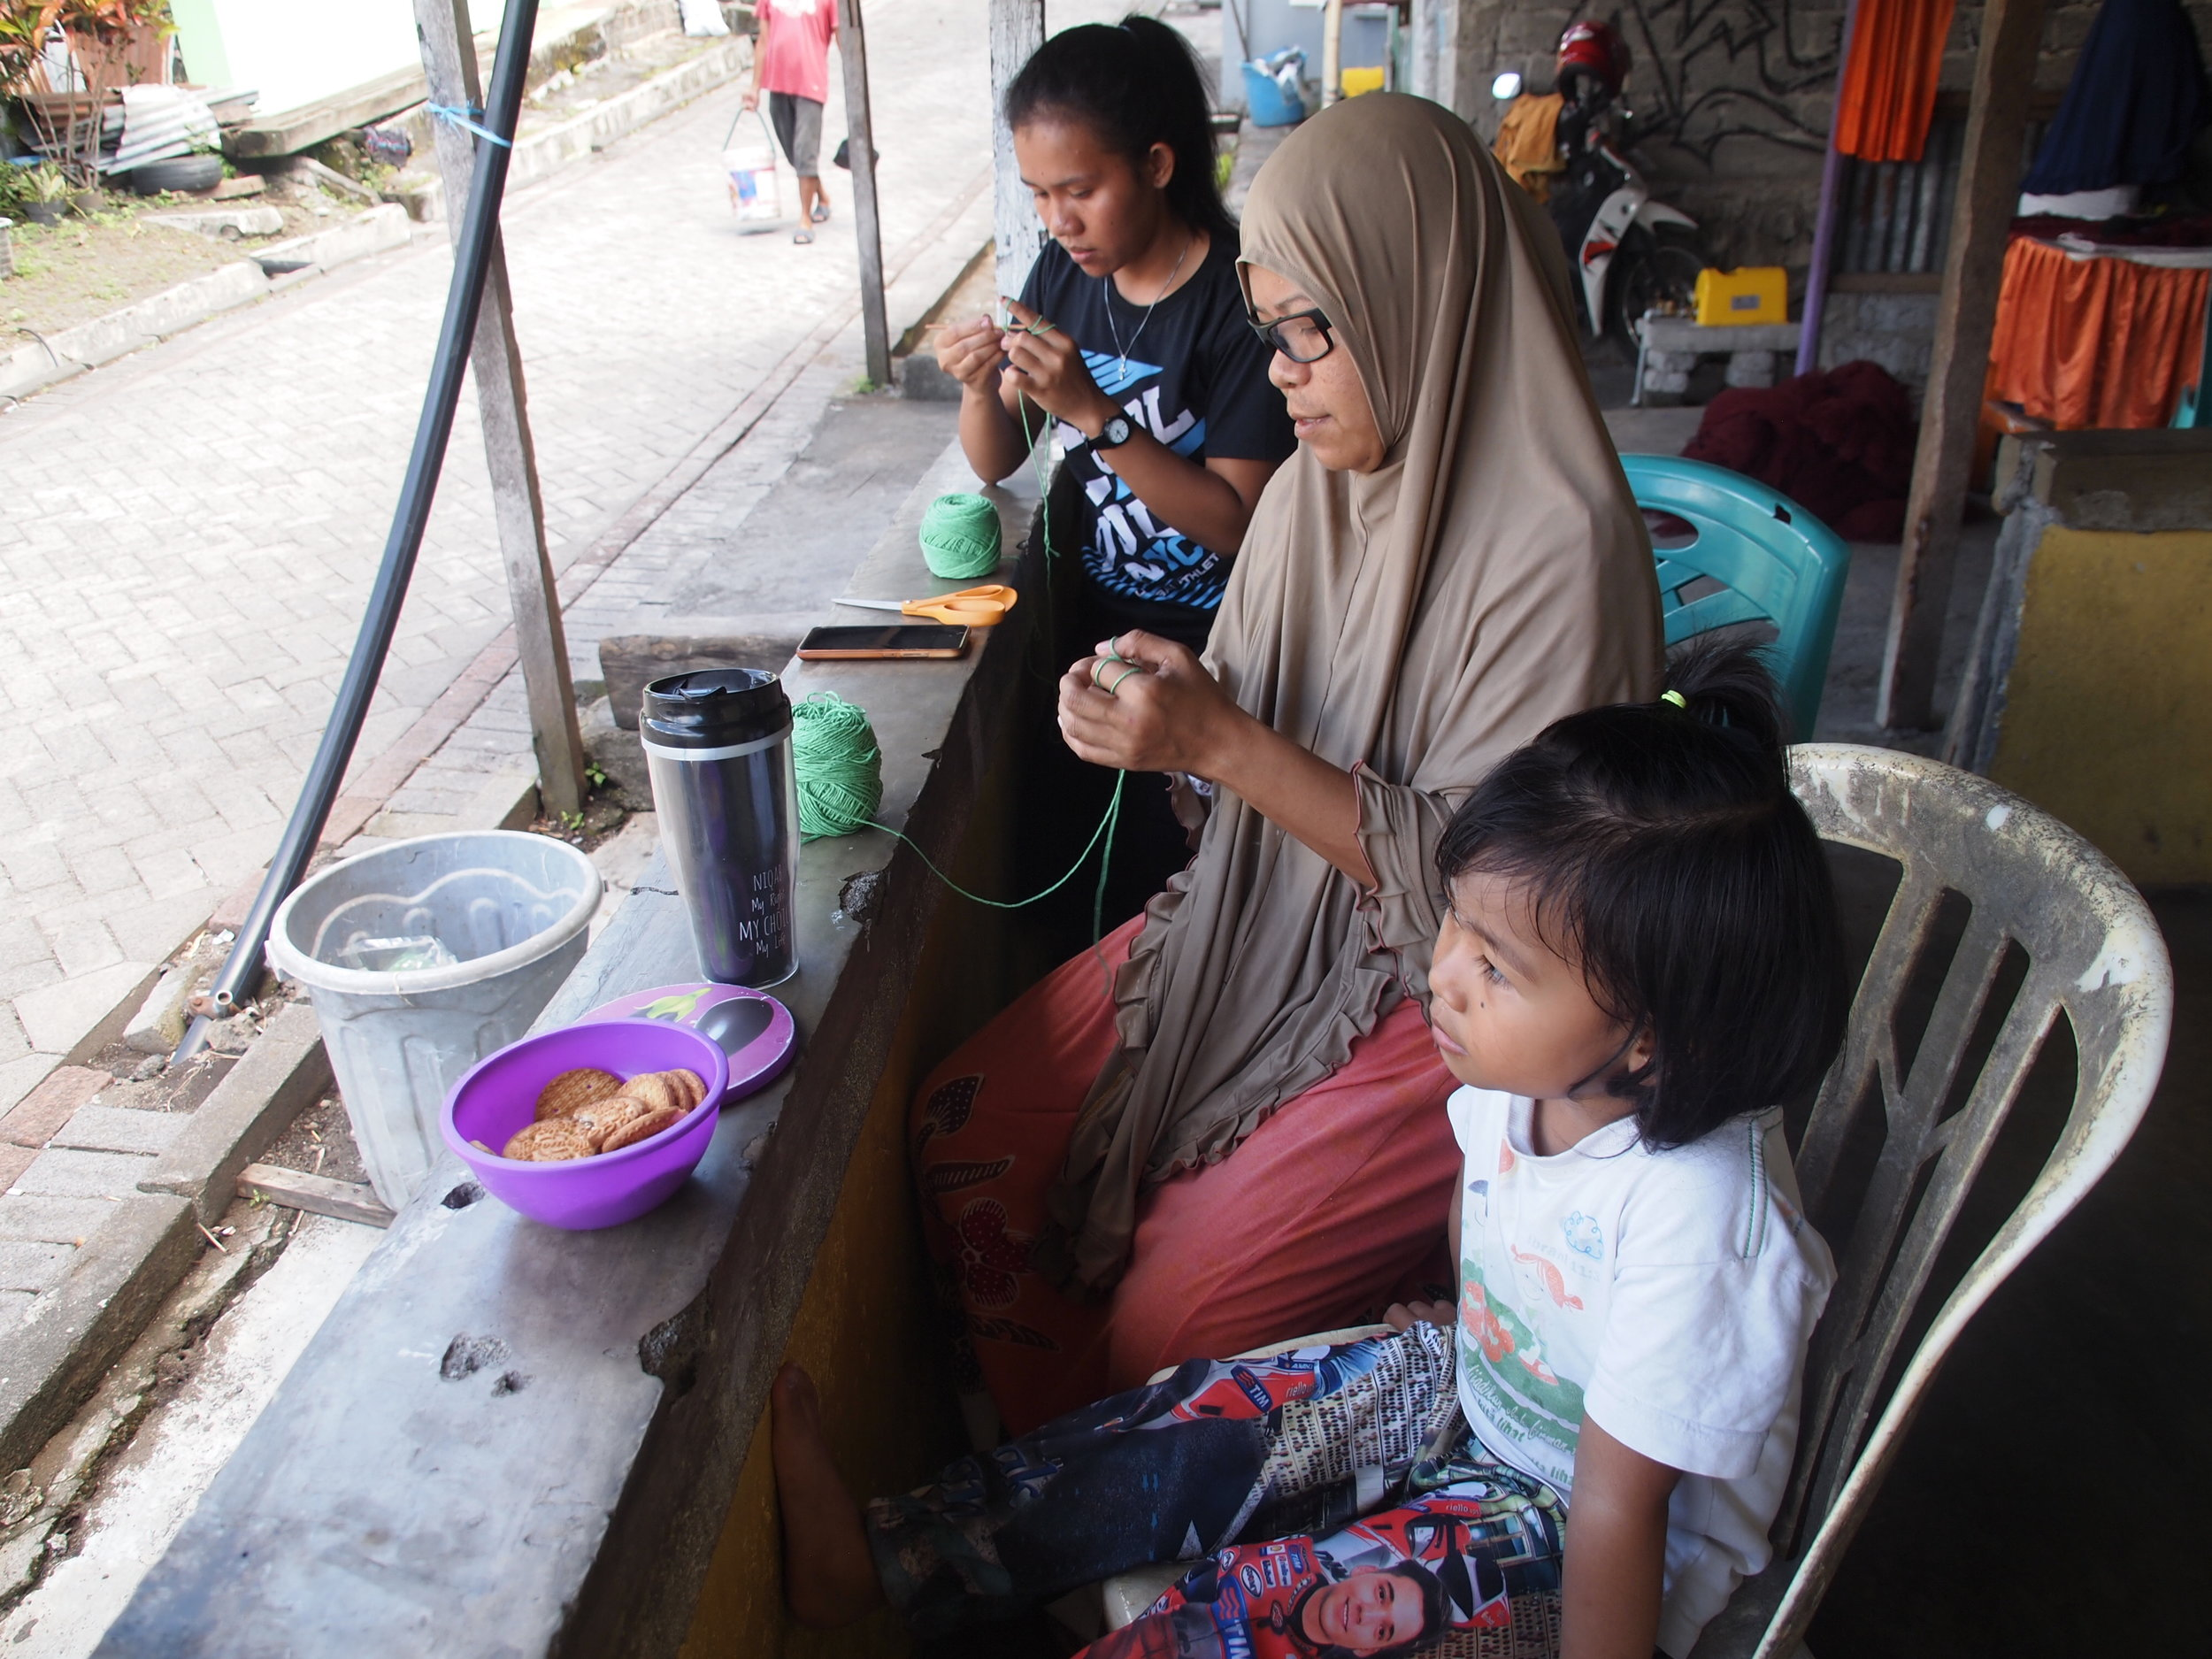 Right to left: Yuli, a student, tried to pull and twist some yarn in crocheting, Ibu Aisya was also doing the same while her daughter enjoyed a bowl of biscuits.